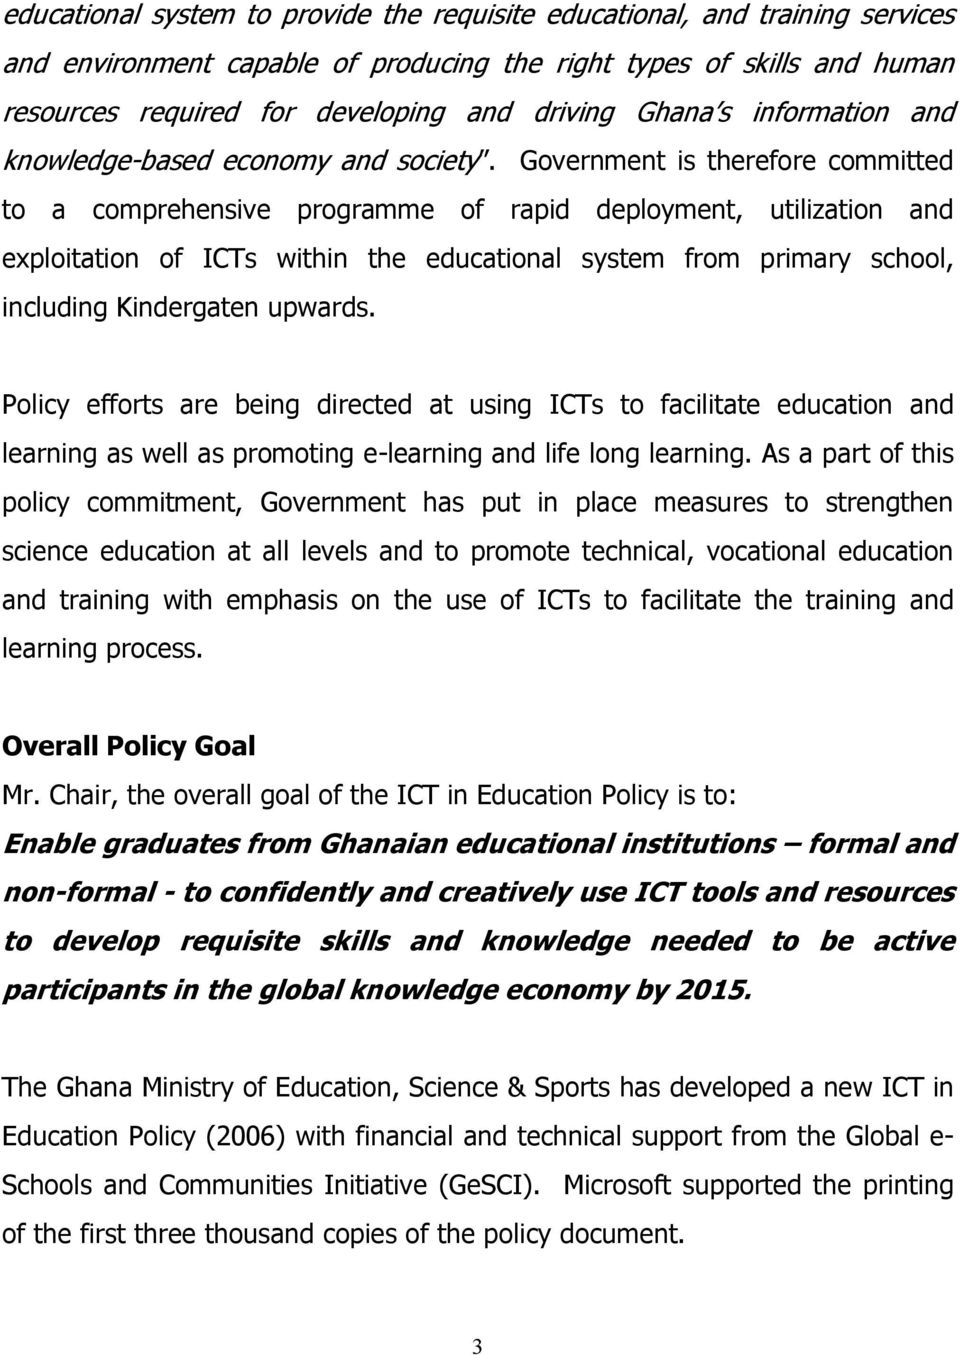 Government is therefore committed to a comprehensive programme of rapid deployment, utilization and exploitation of ICTs within the educational system from primary school, including Kindergaten